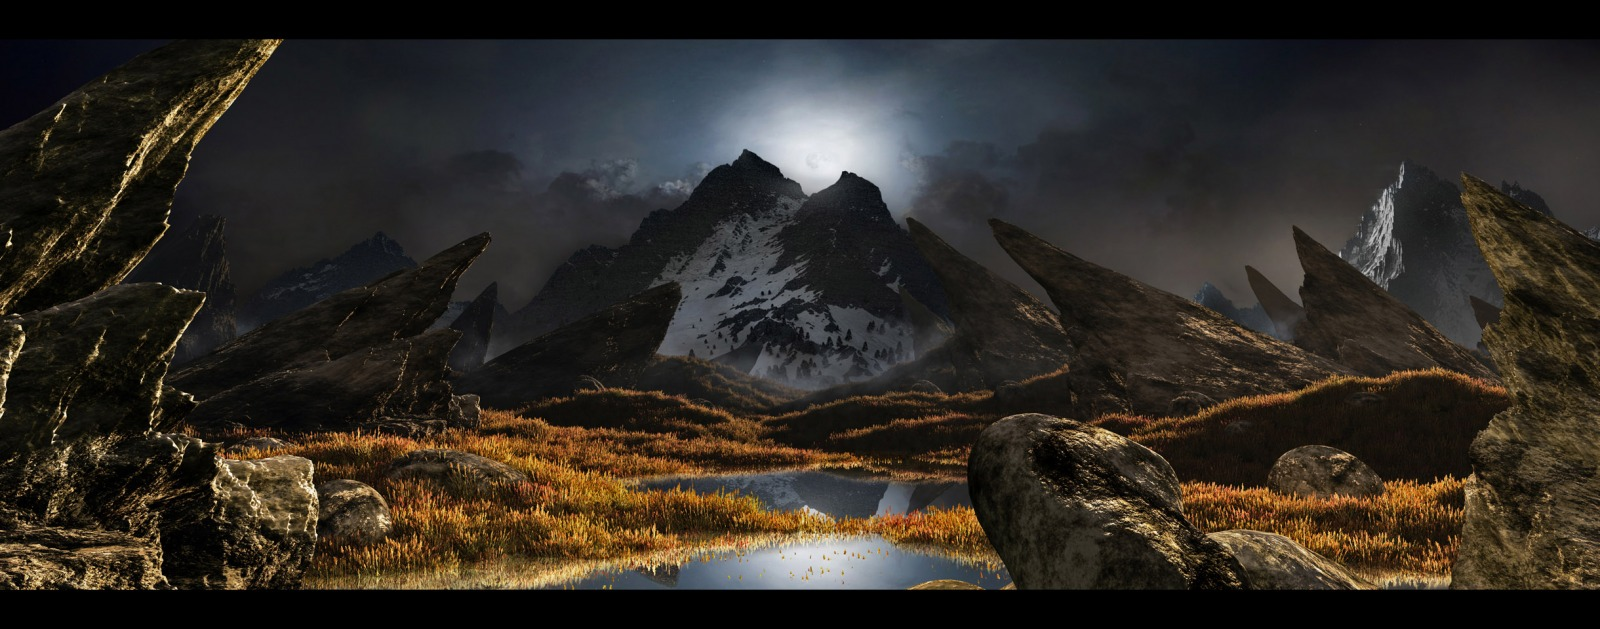 1600x629 10856 matte fantasy background